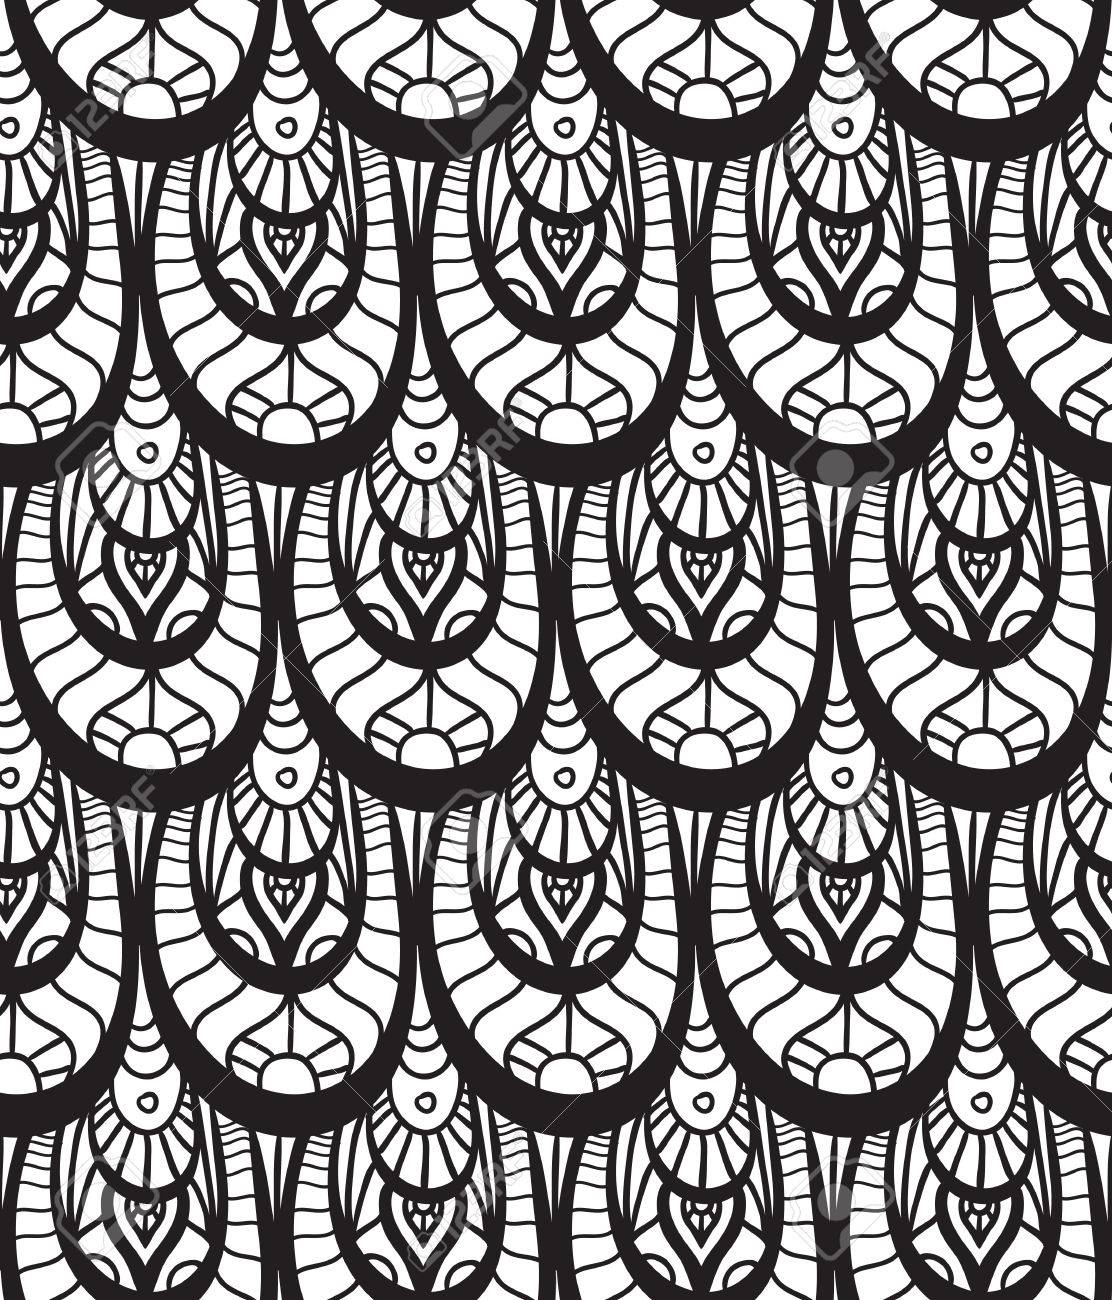 Seamless black and white texture with fish scales decorated with doodle pattern for your creativity - 49409620